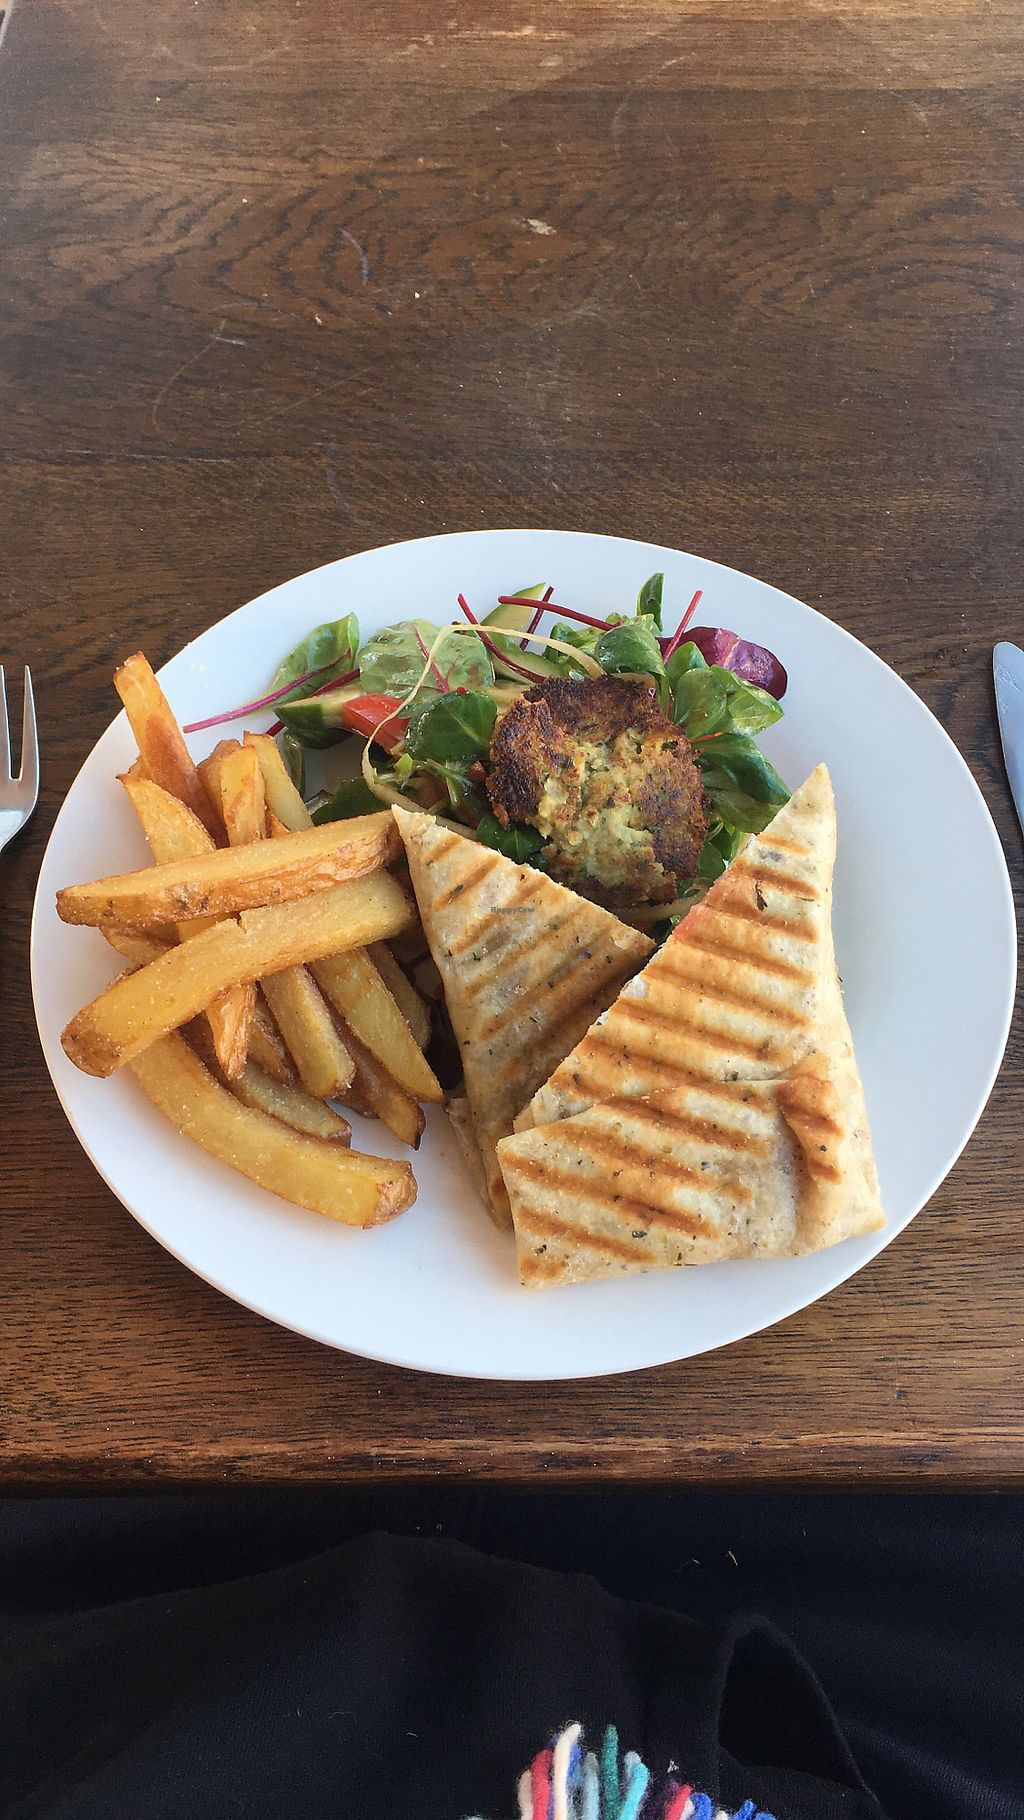 """Photo of The Get Stuffed Pie House  by <a href=""""/members/profile/Superteebs"""">Superteebs</a> <br/>Falafel wrap salad and chips beautiful !! <br/> January 26, 2018  - <a href='/contact/abuse/image/98667/351057'>Report</a>"""